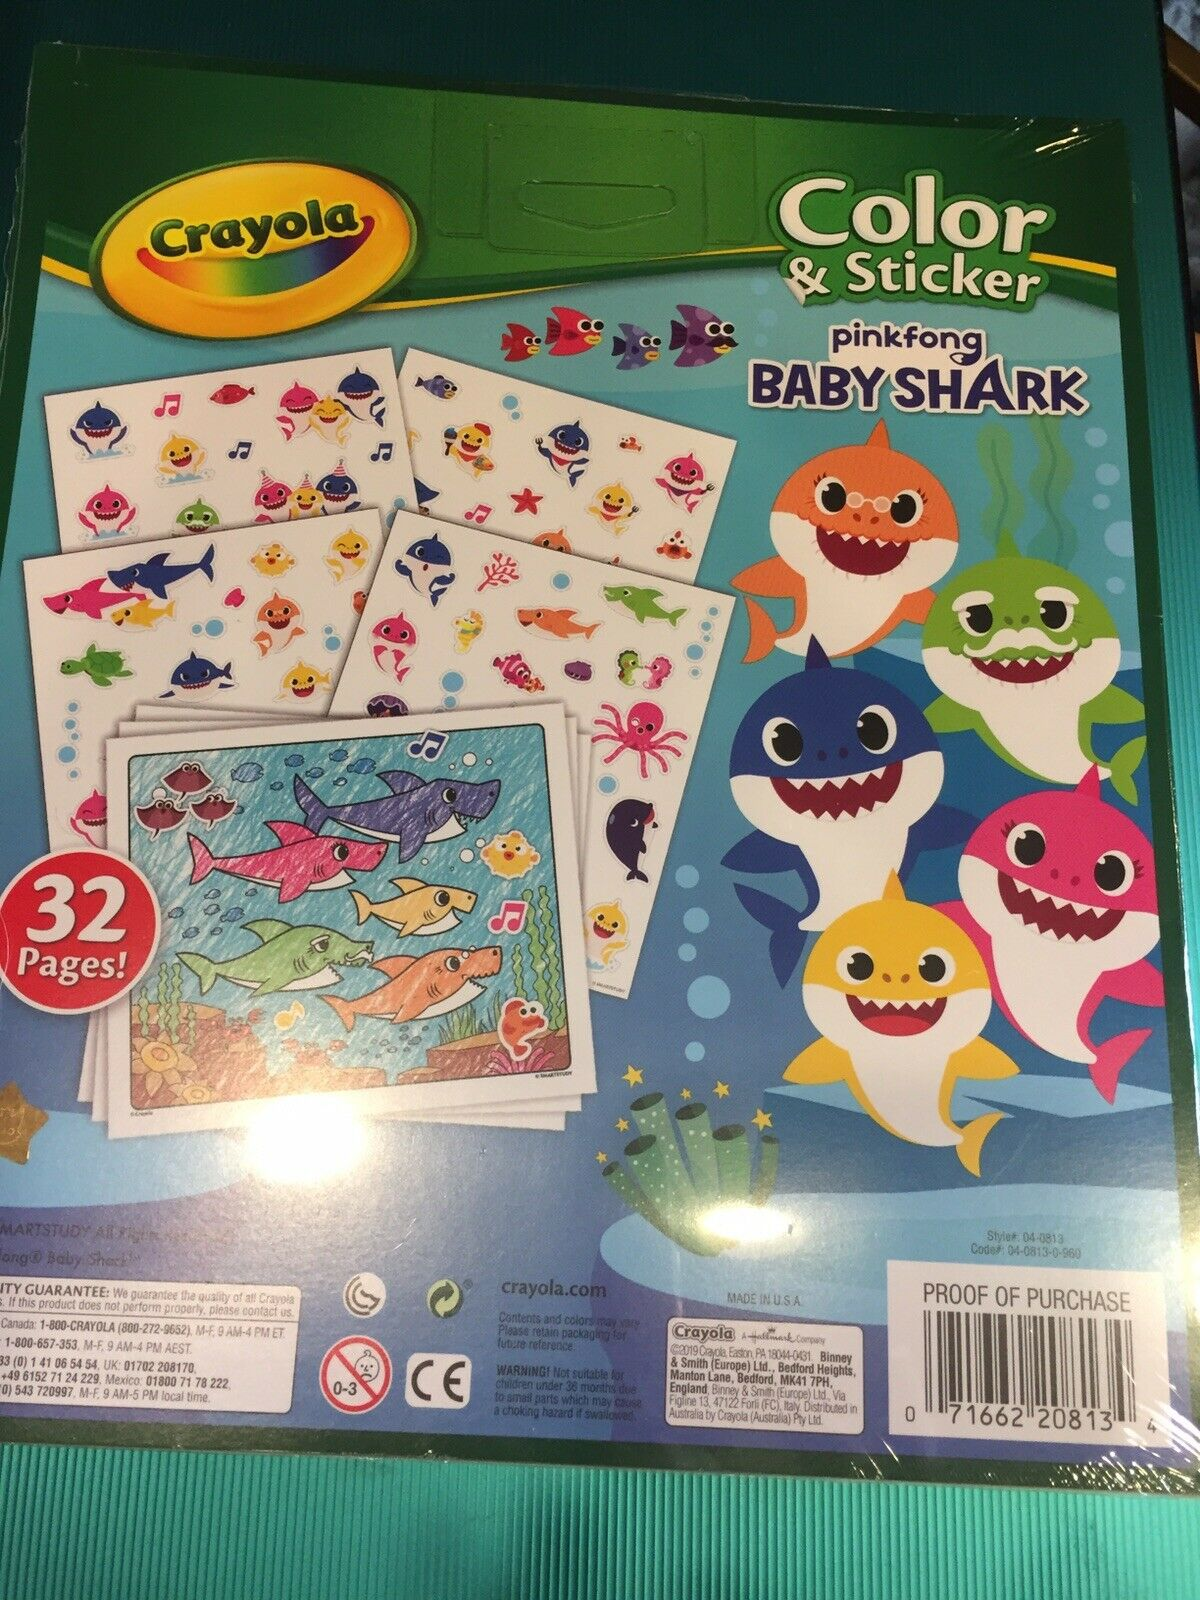 Crayola Baby Shark, Gift For Kids, Ages 3+ Color & Stickers